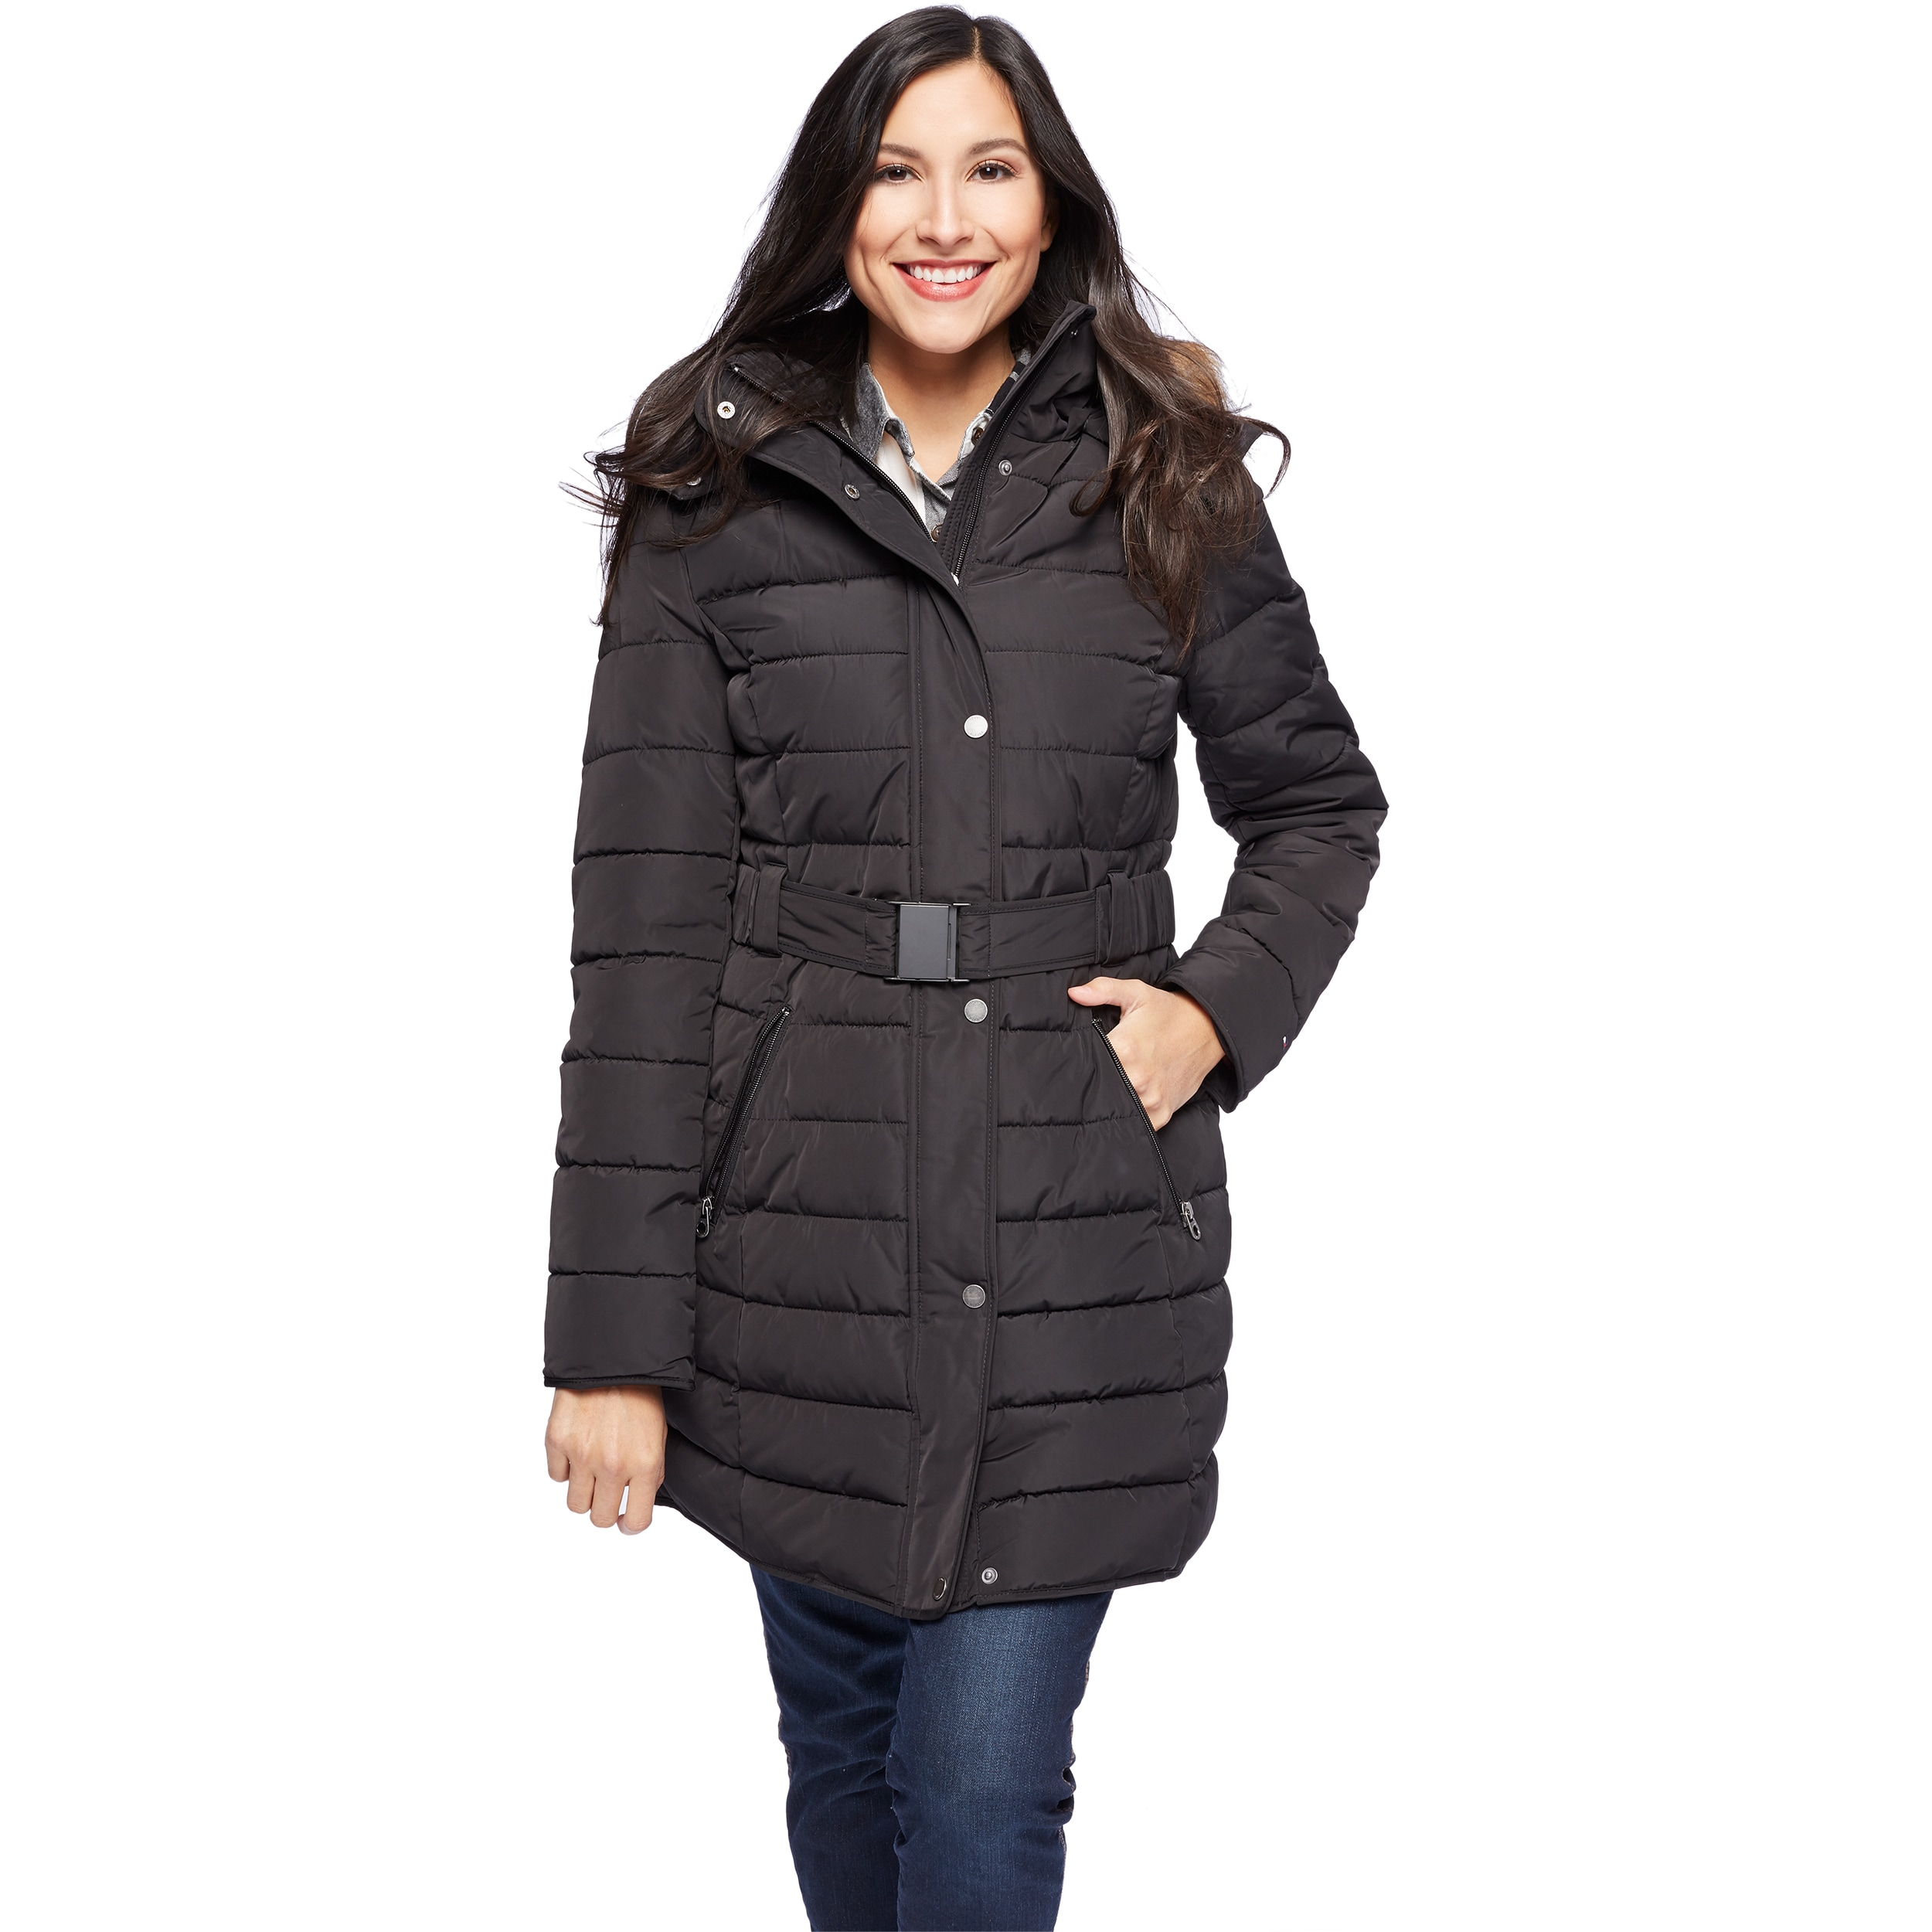 Tommy Hilfiger Women's Faux Fur Trim Hood Puffer Jacket